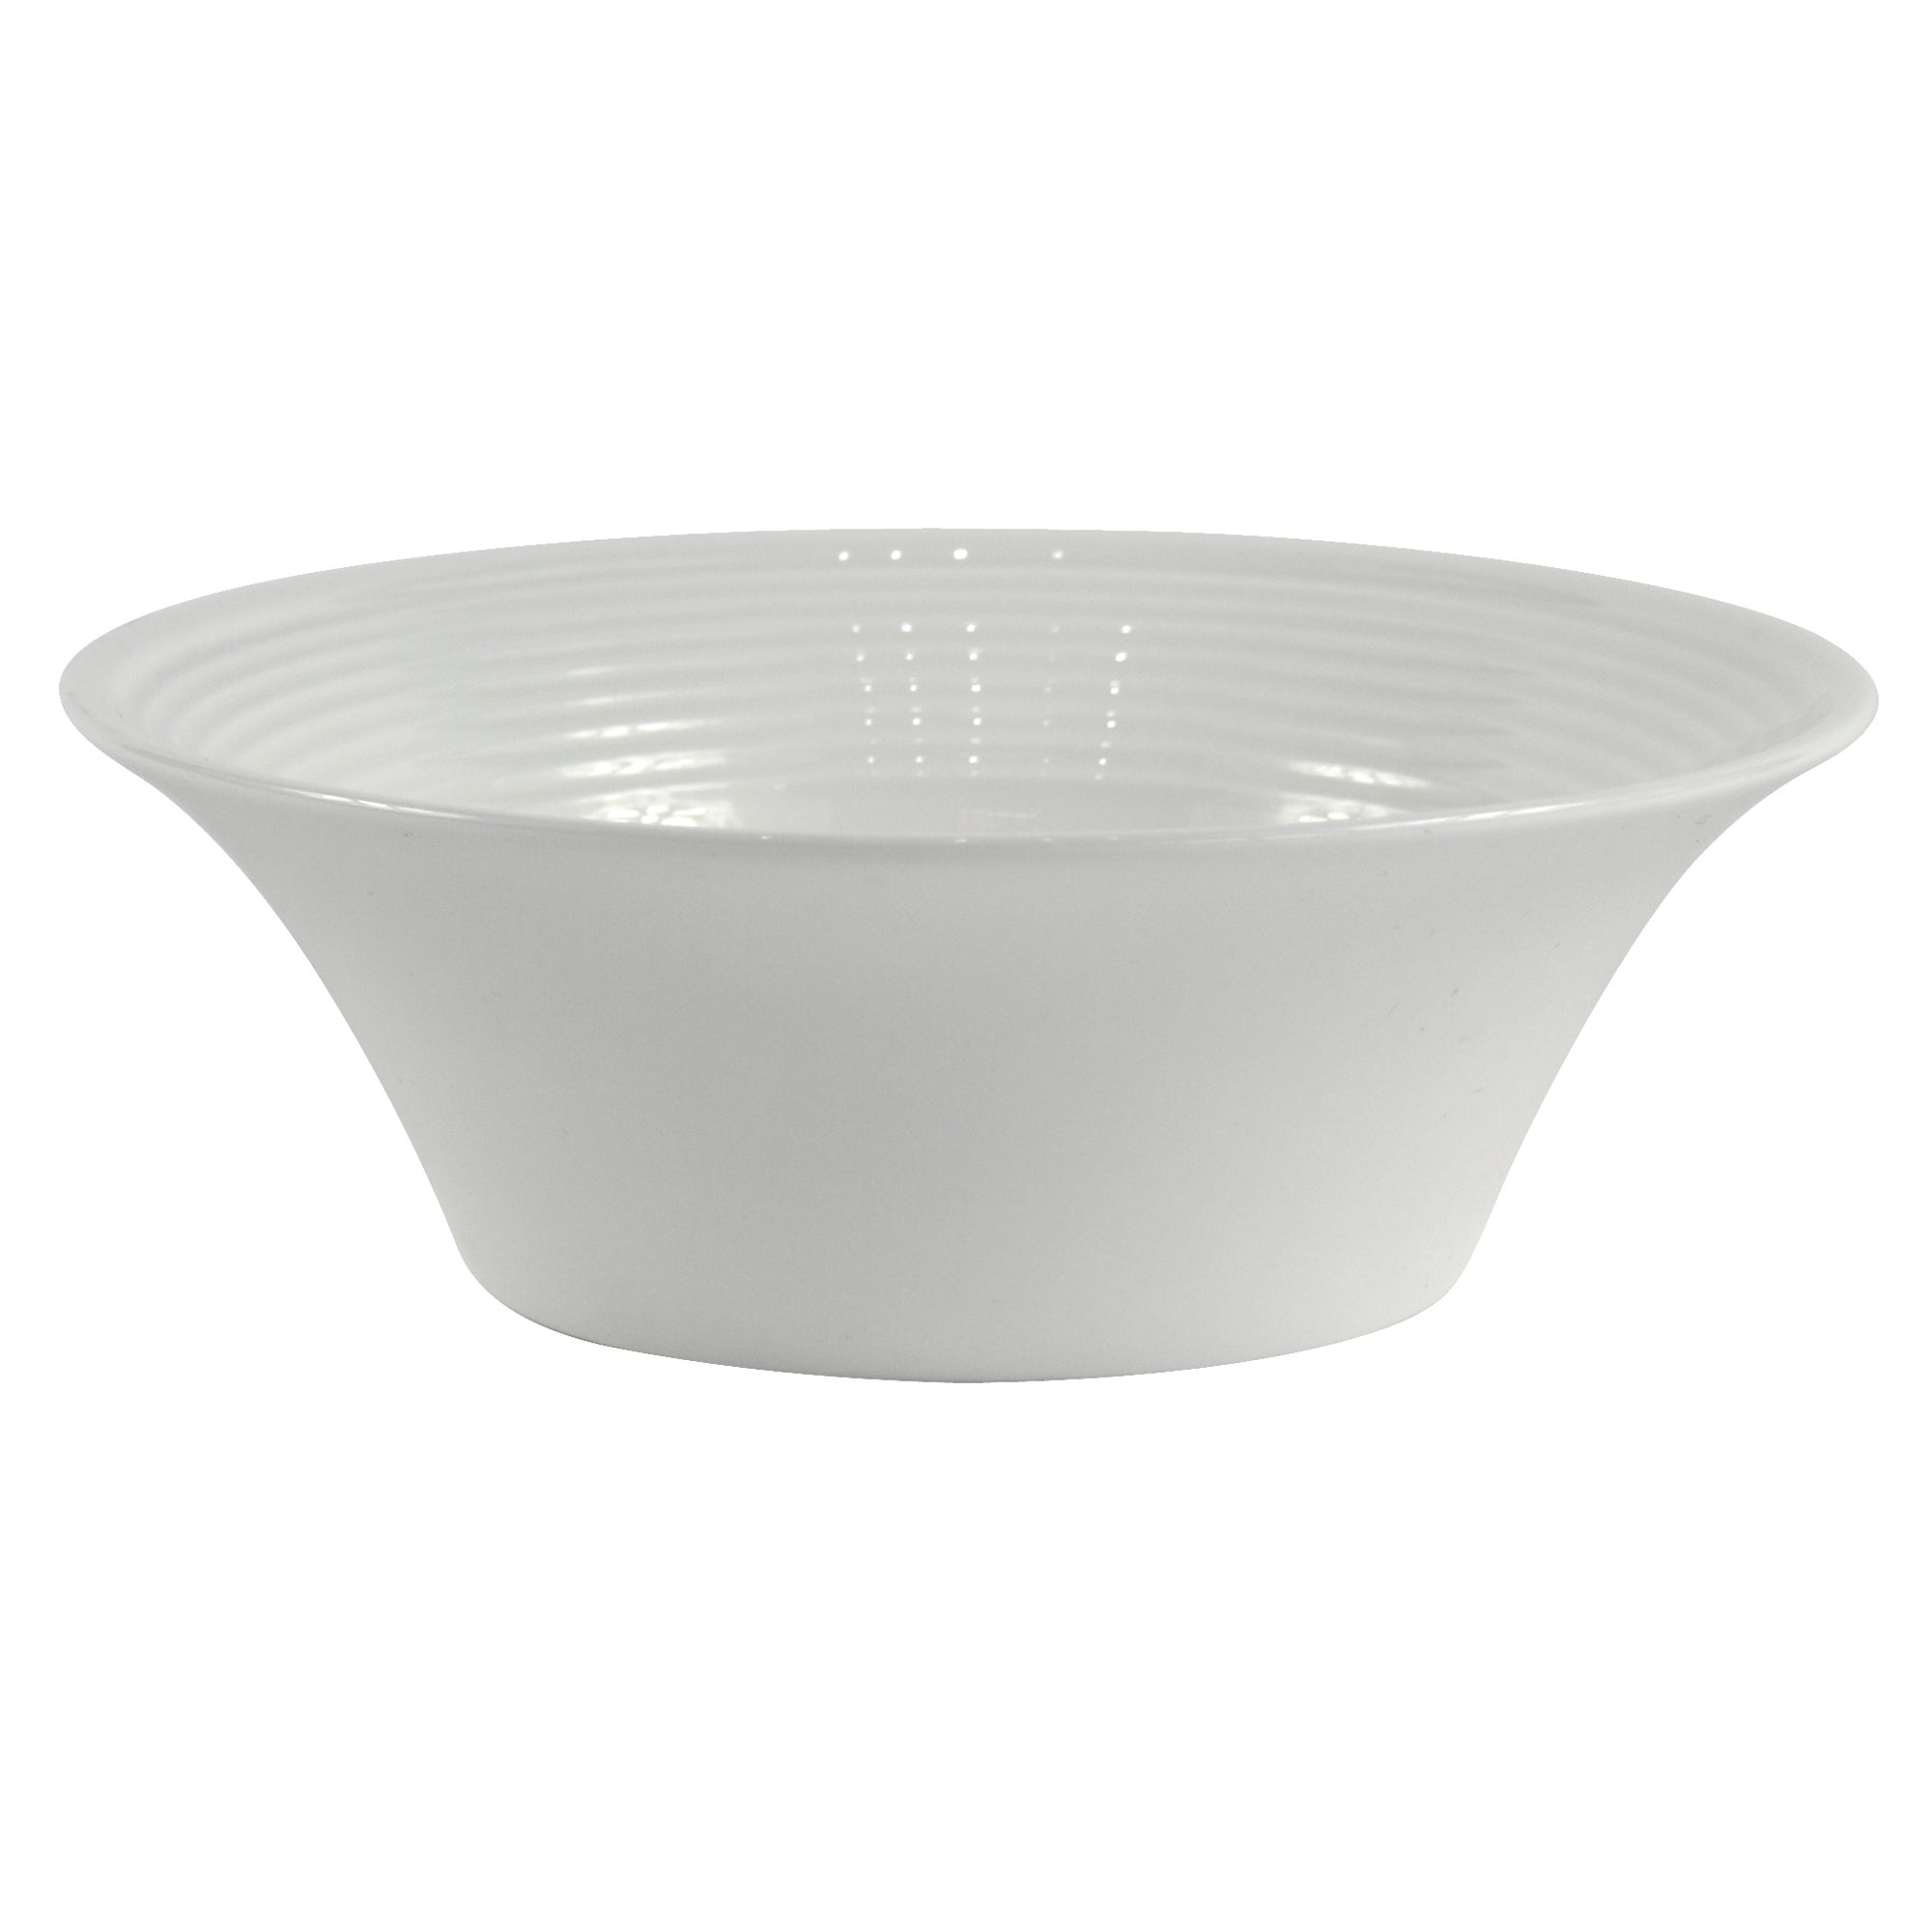 Dorma Windsor Cereal Bowl